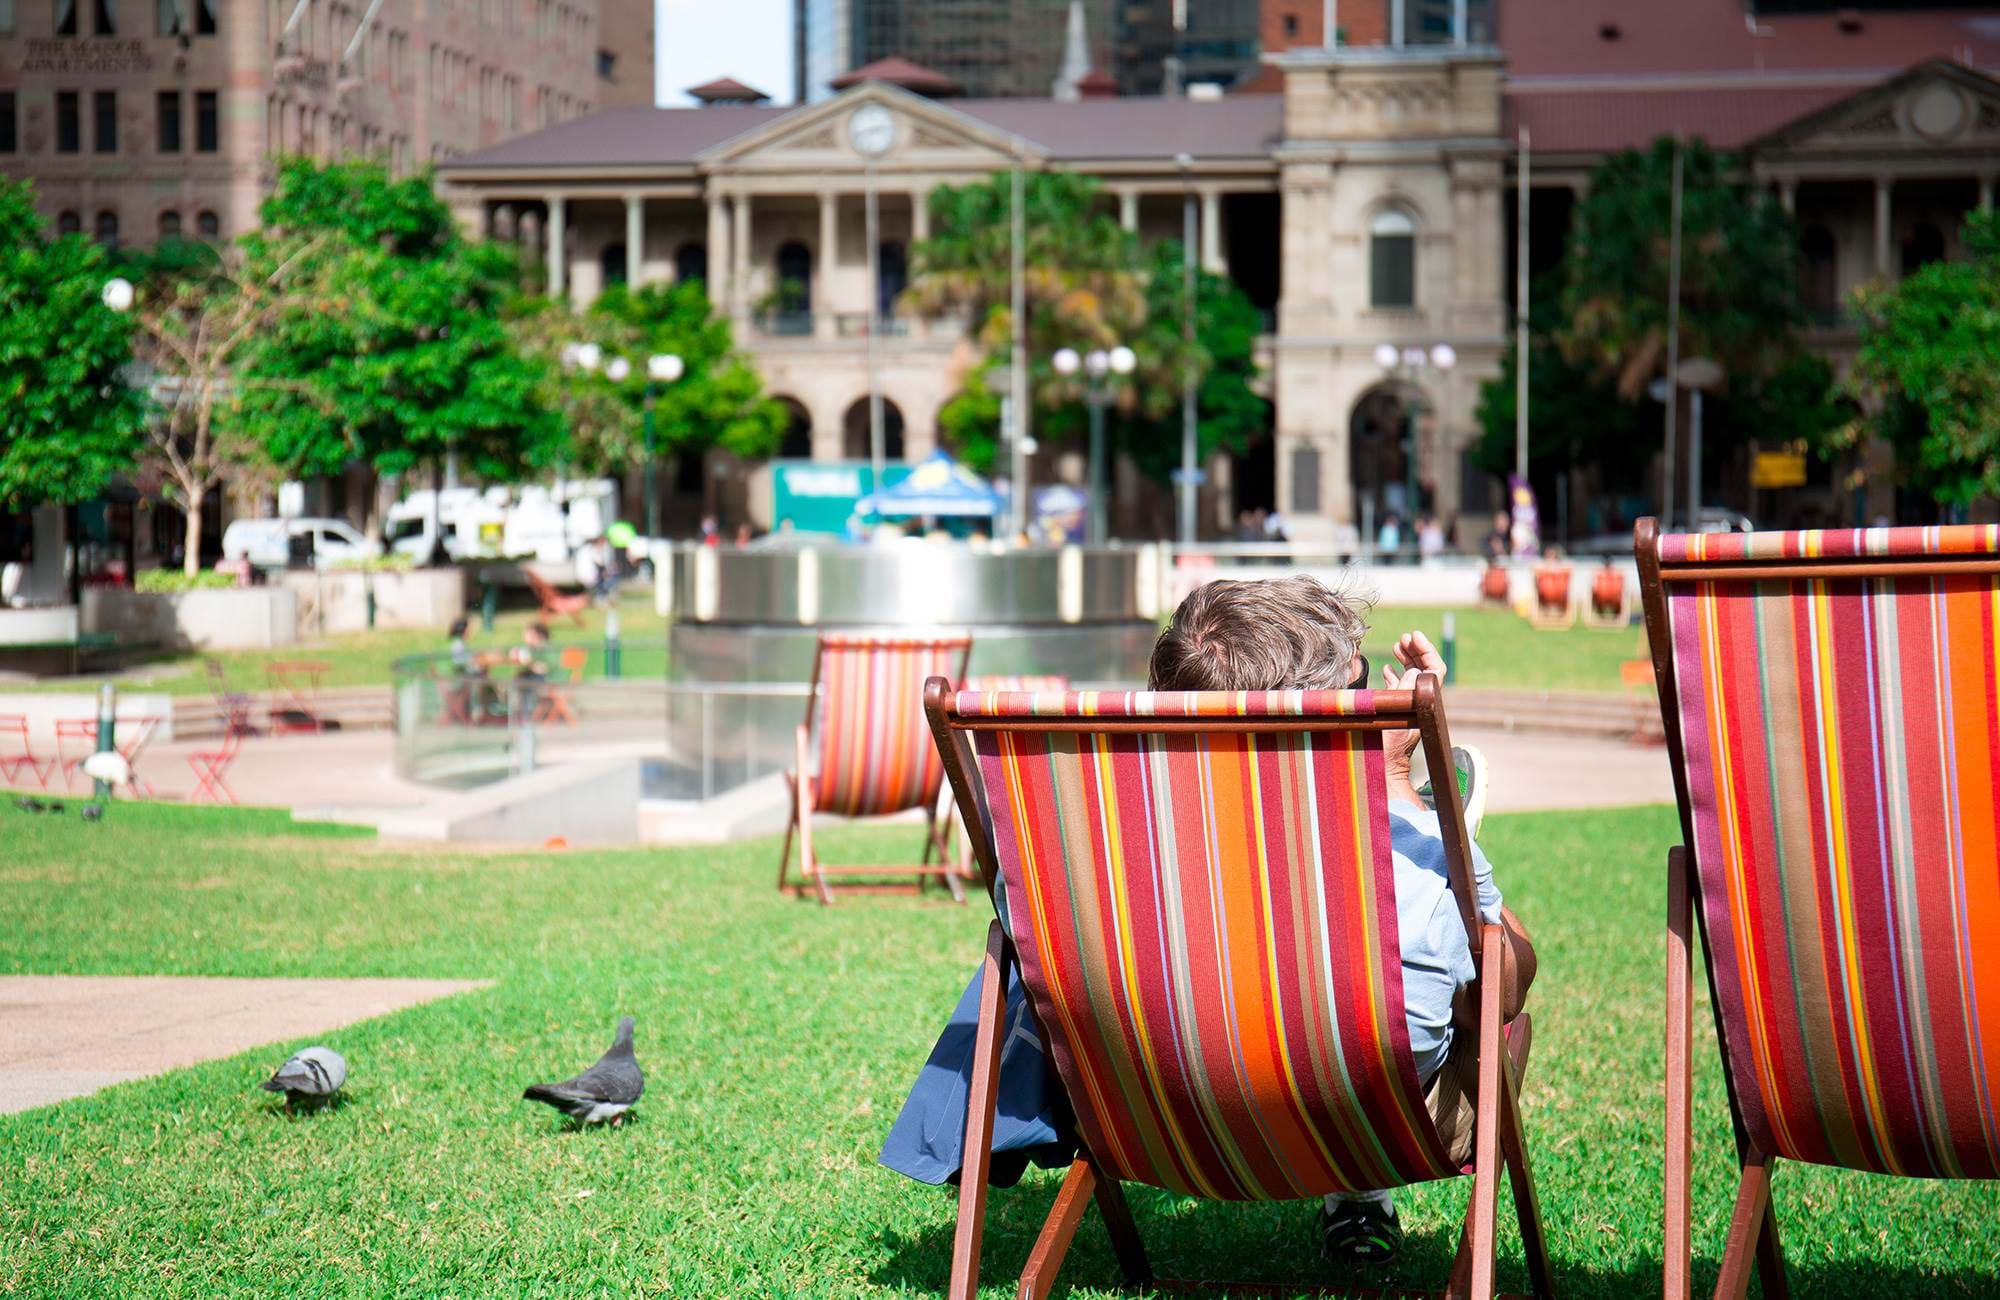 a student is chilling in a park in brisbane in australia